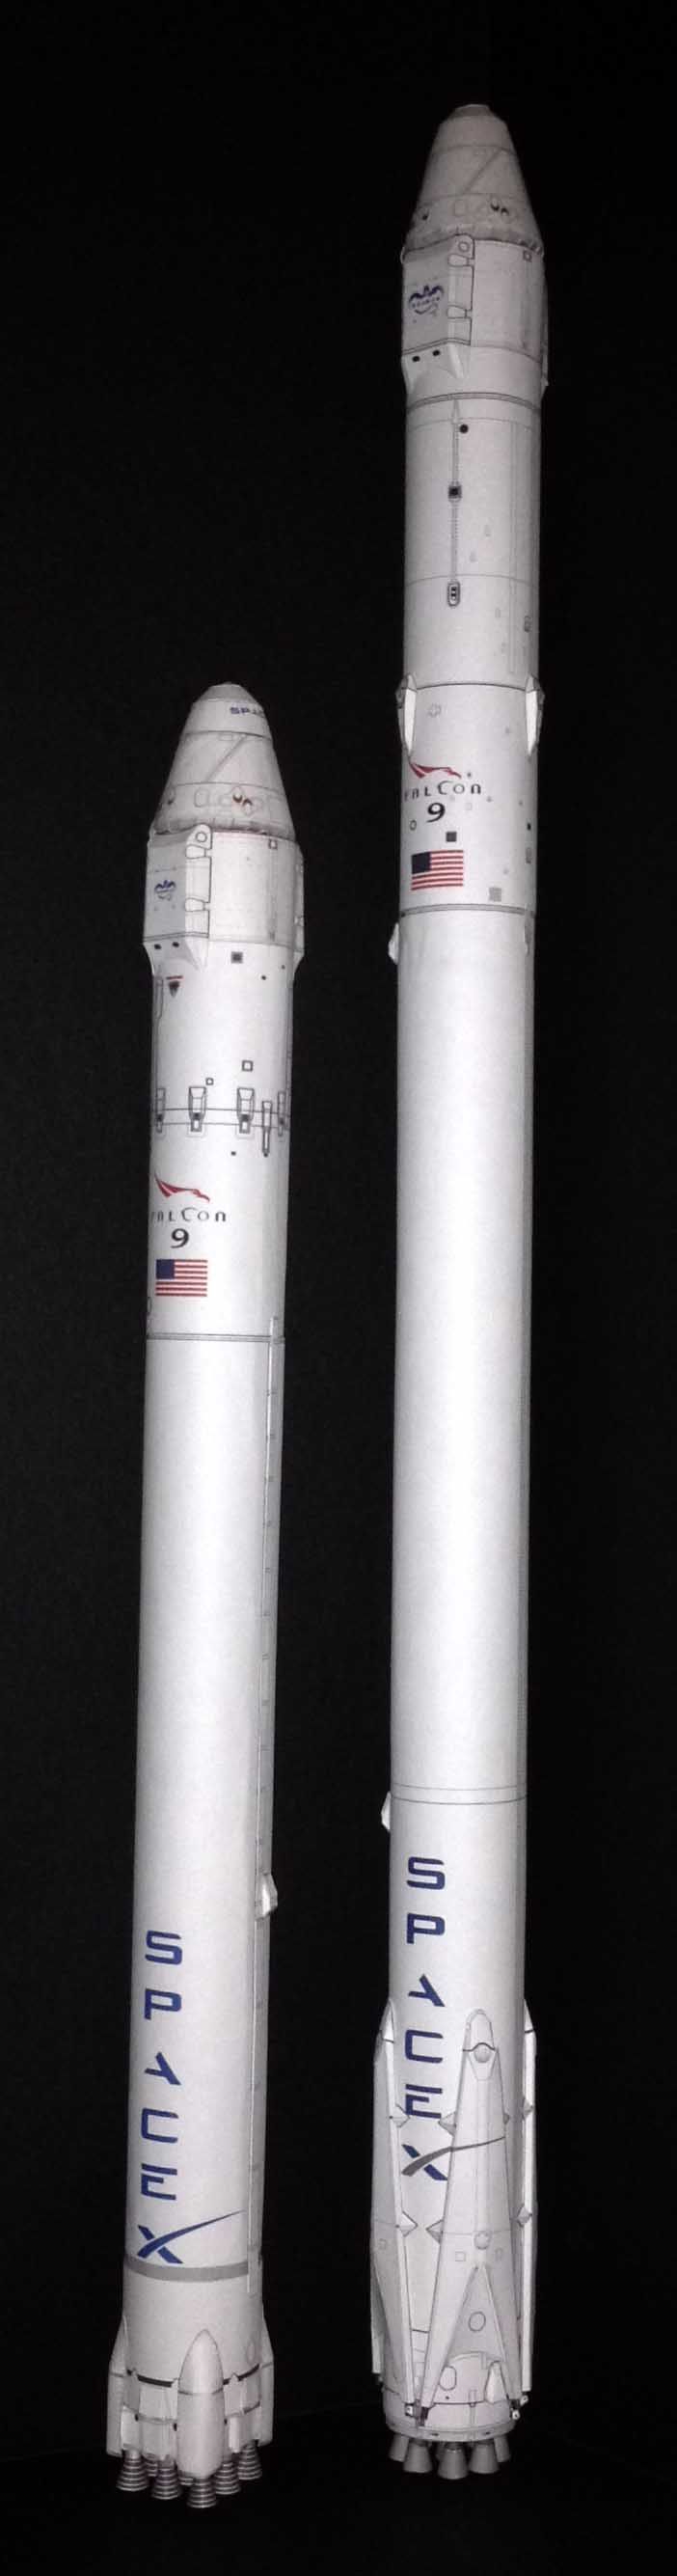 Space X CRS-3